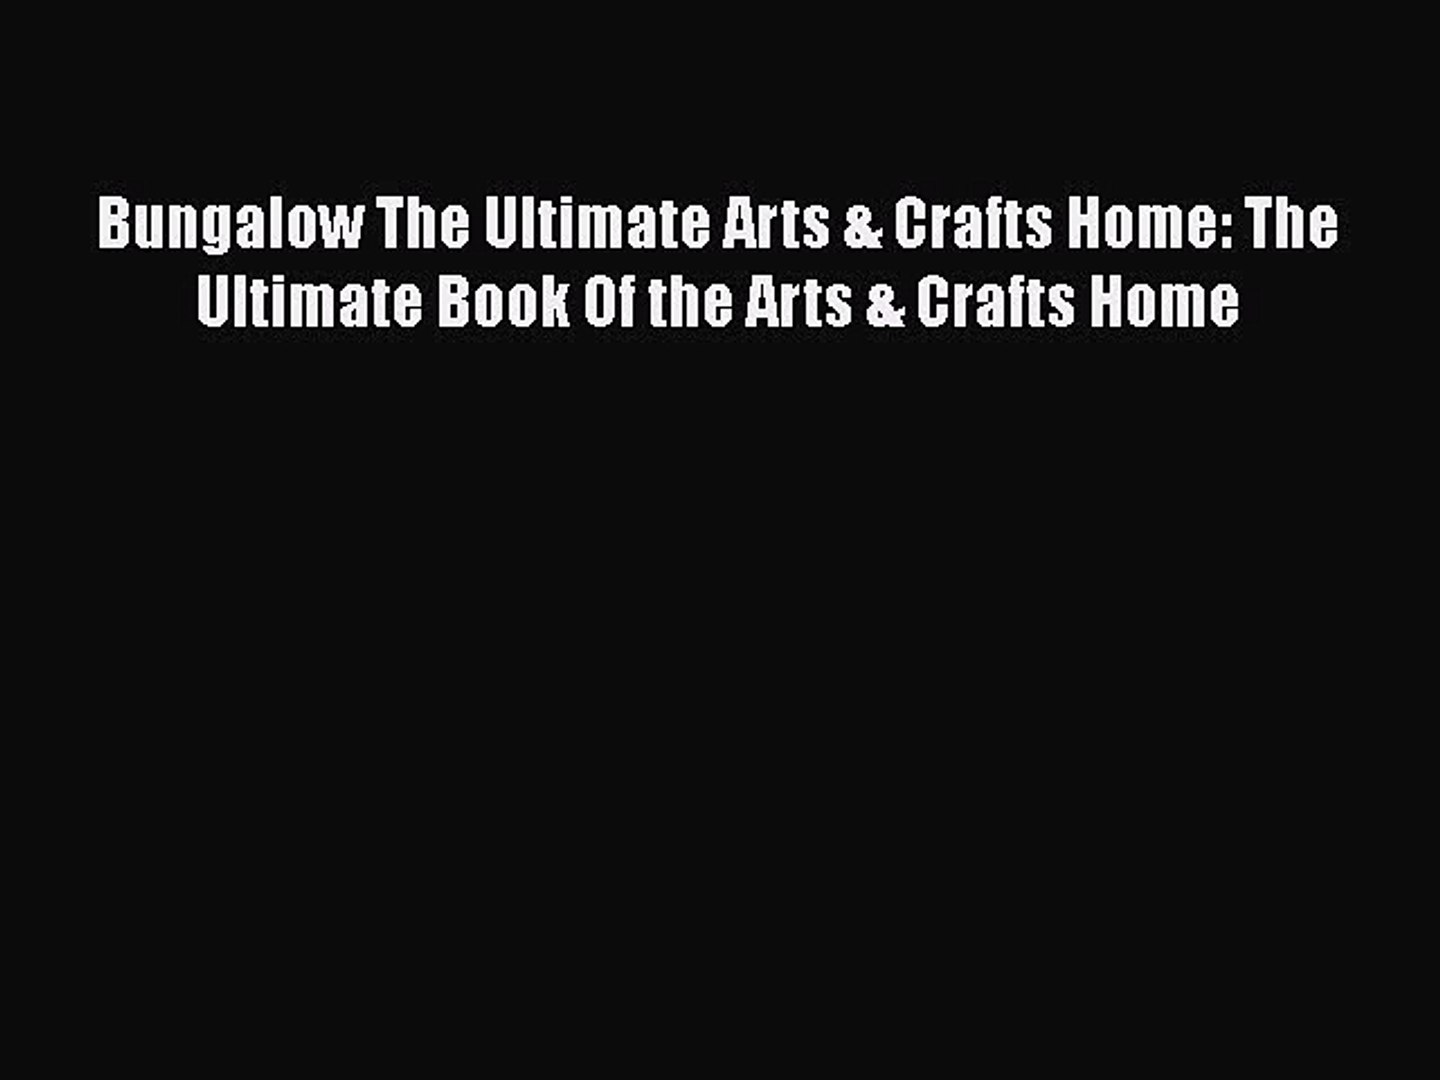 Bungalow The Ultimate Arts /& Crafts Home The Ultimate Book Of the Arts /& Crafts Home